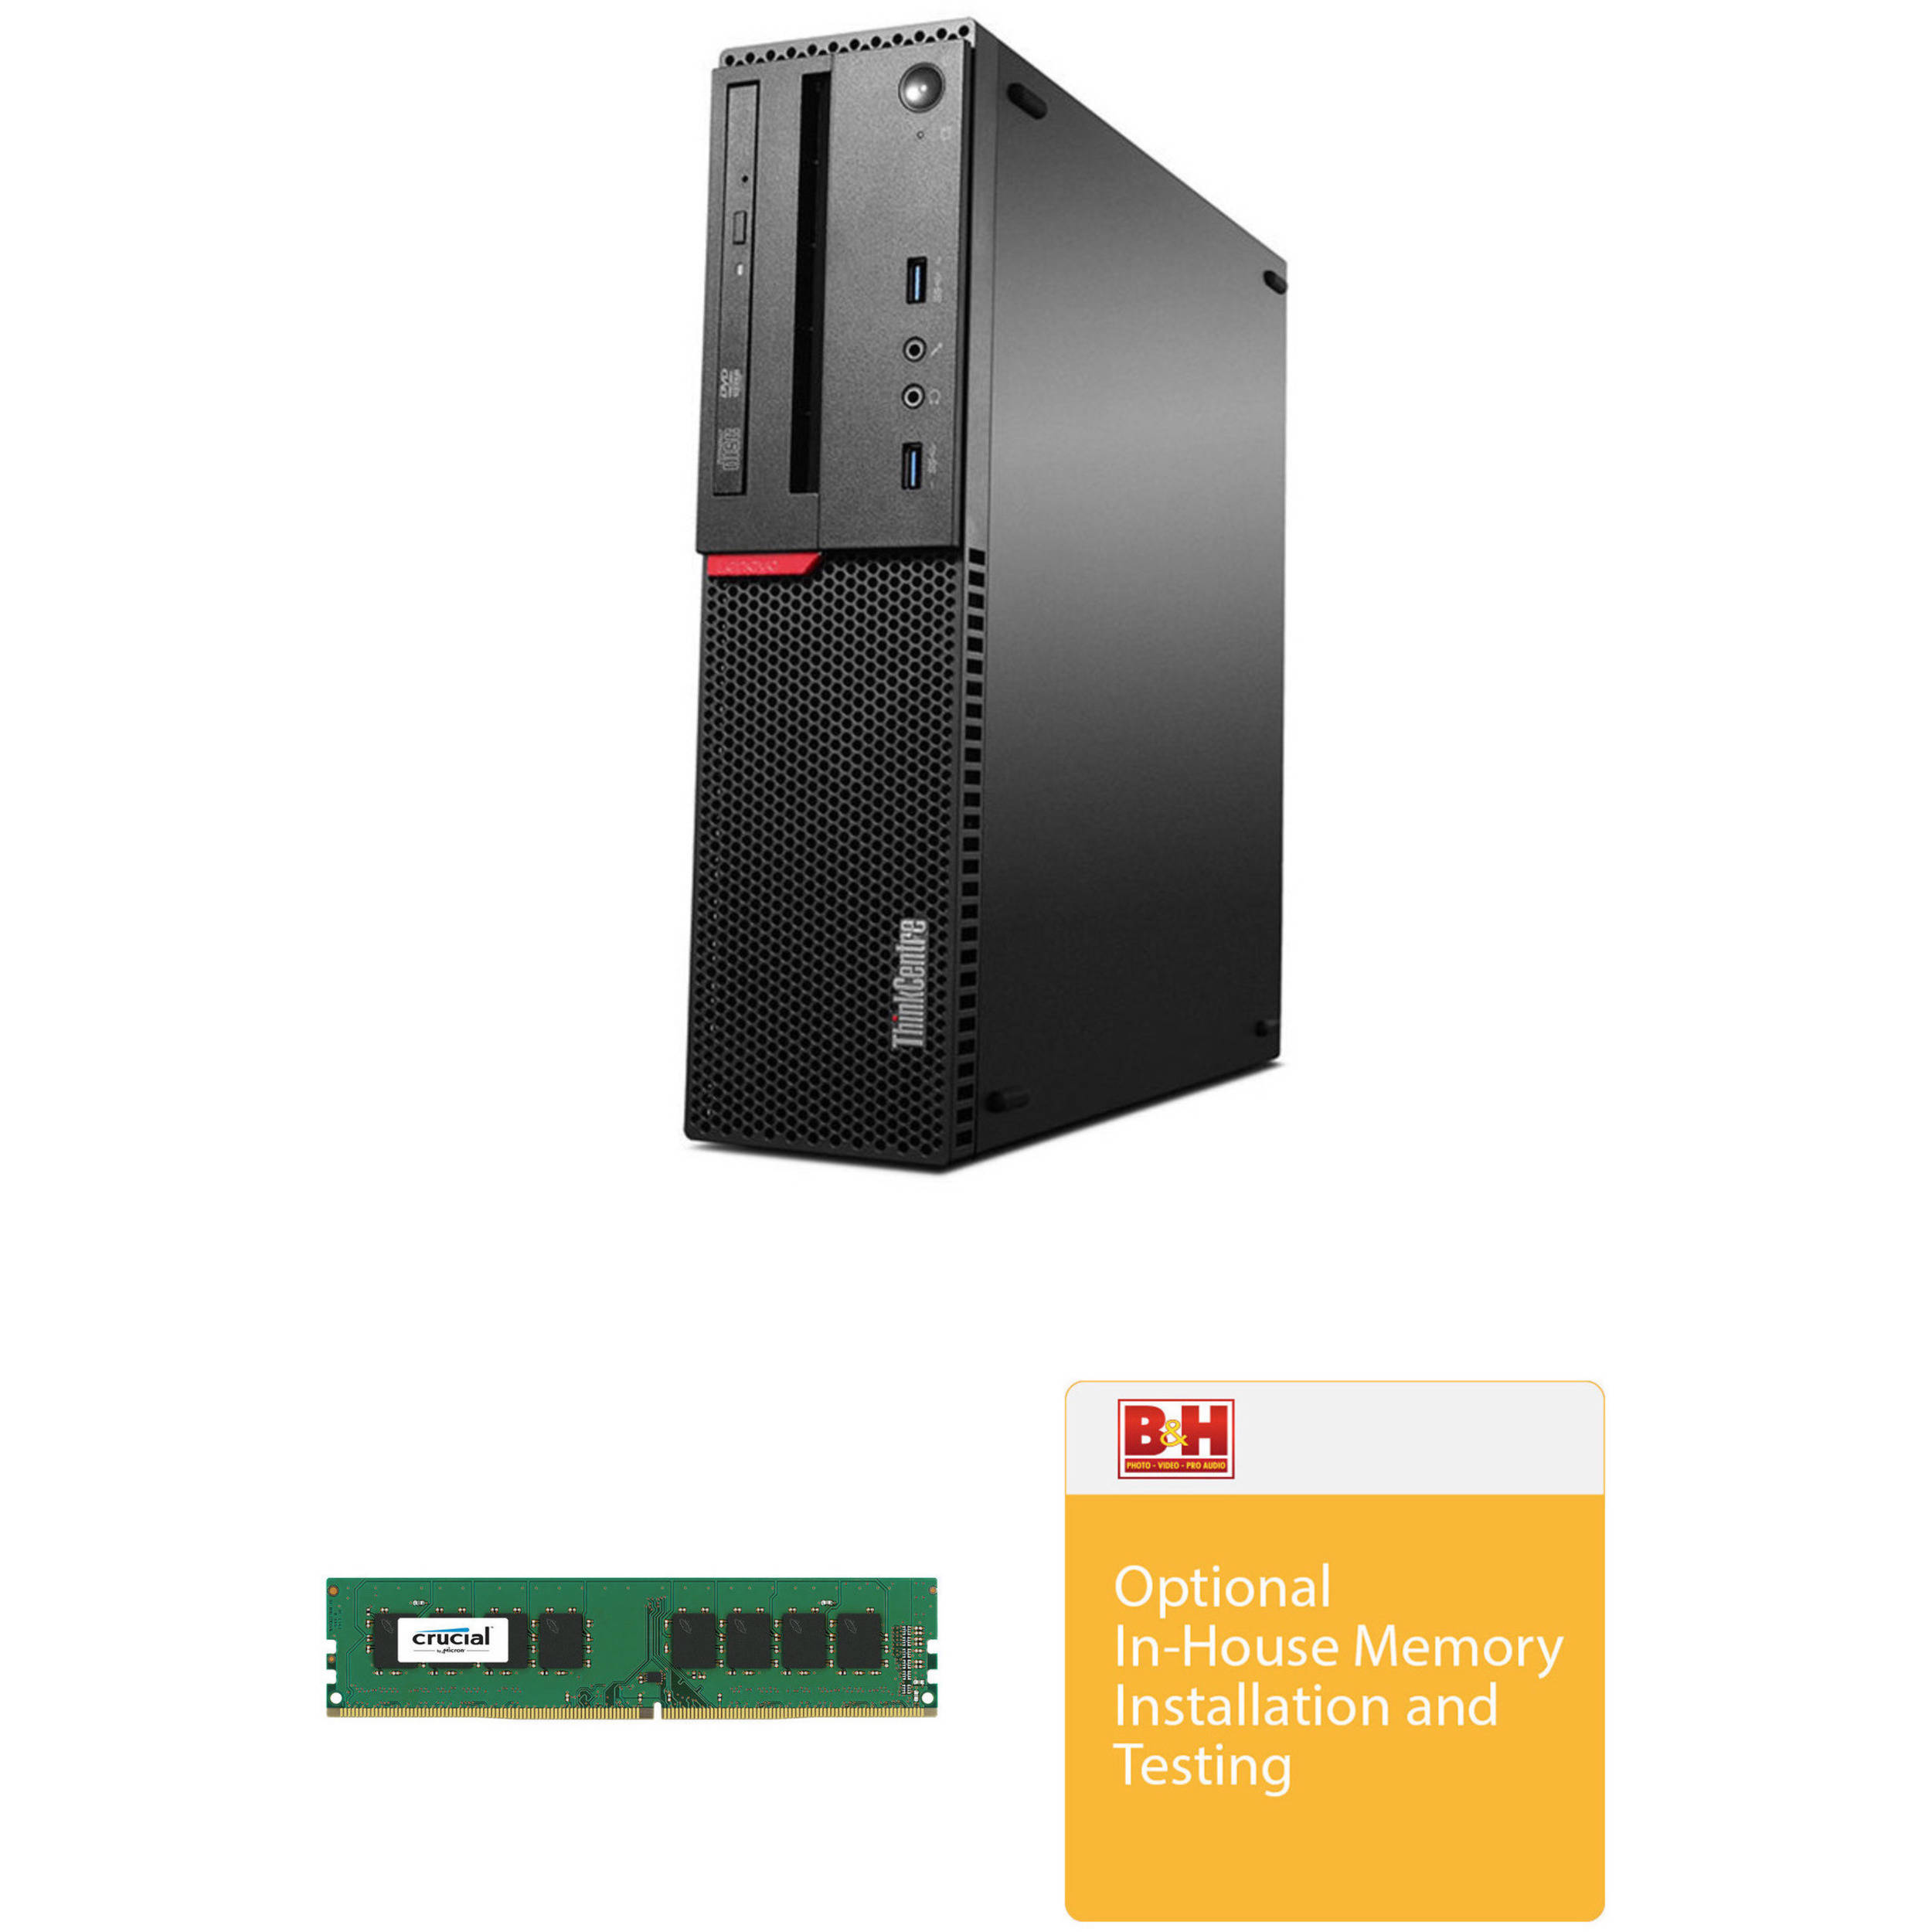 Lenovo ThinkCentre M700 Small Form Factor Desktop Computer with 8GB of DDR4  RAM & Installation Kit